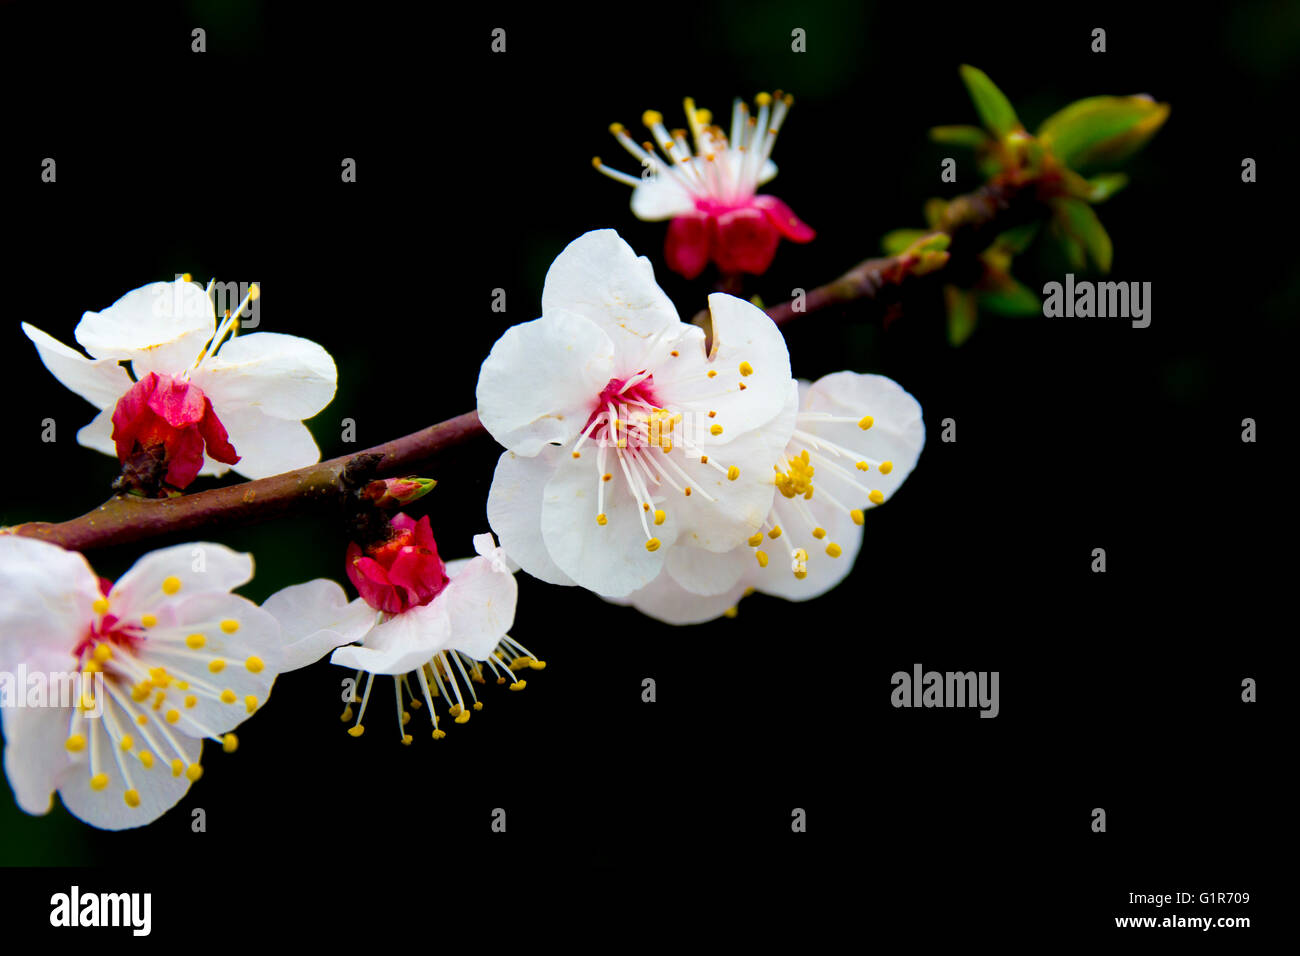 Apricot blooms on bare branch. Black background - Stock Image